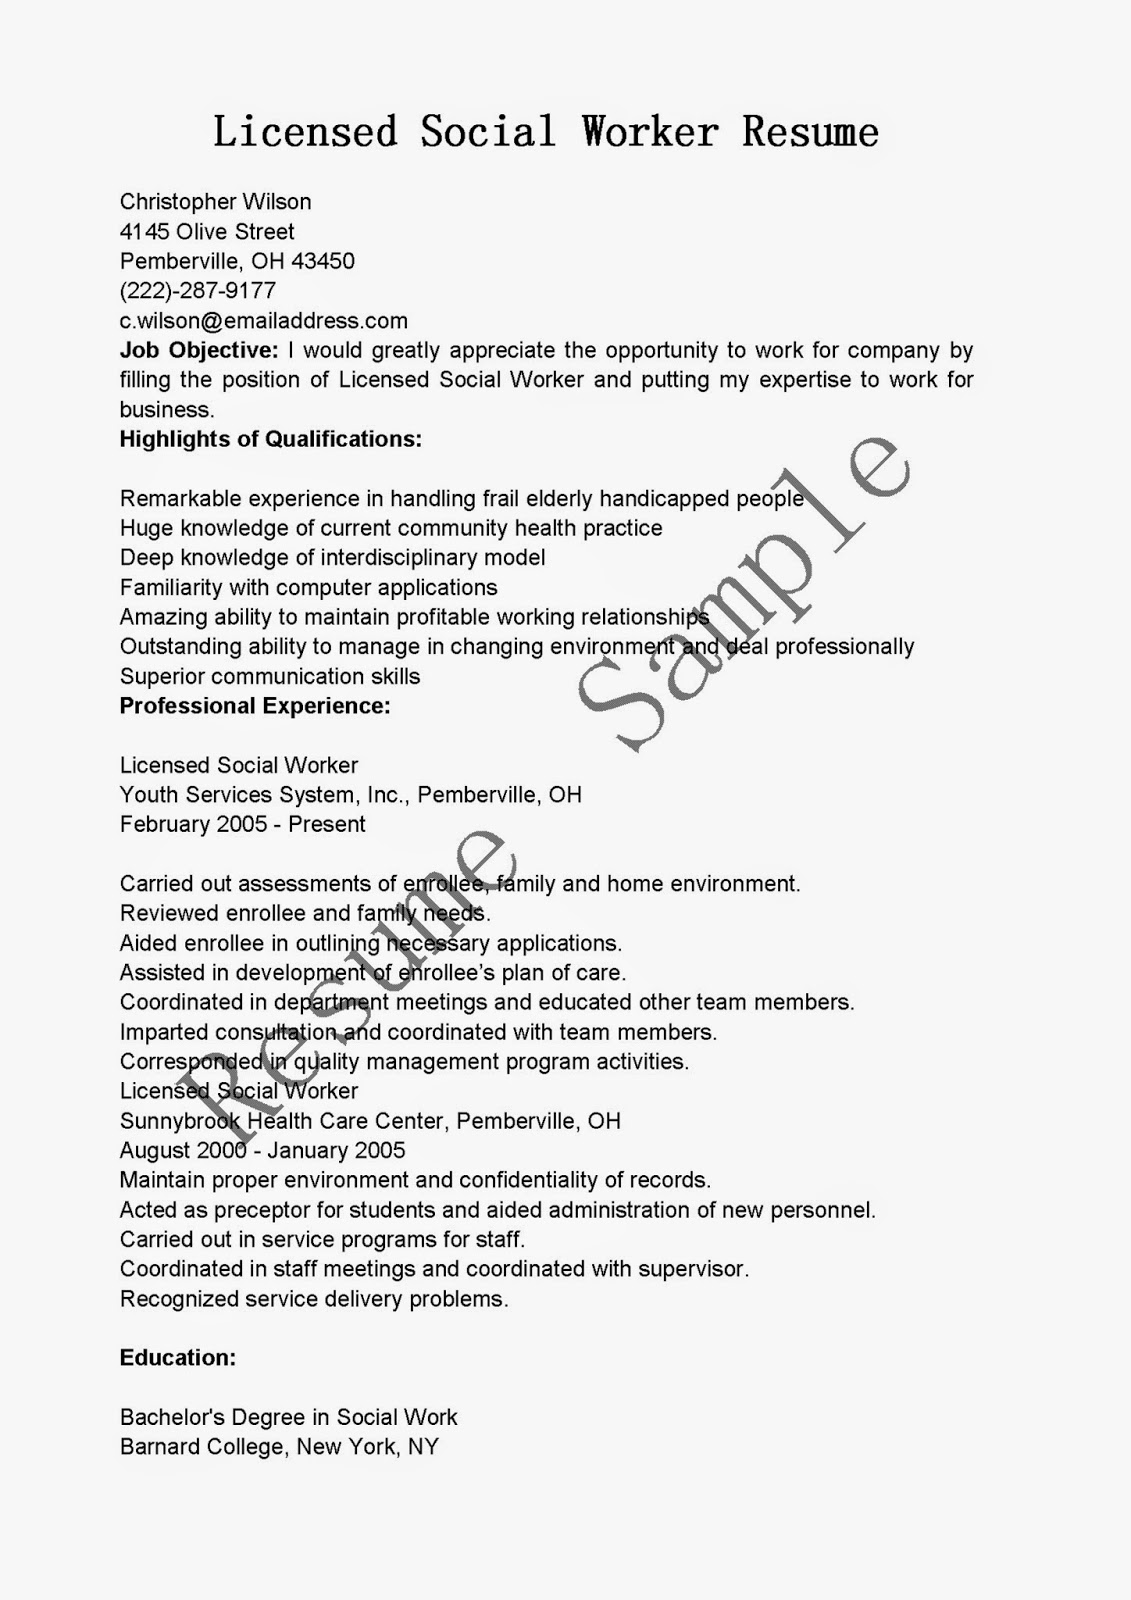 Social Work Resume Templates Example Of Social Worker Resume Udgereport821 Web Fc2